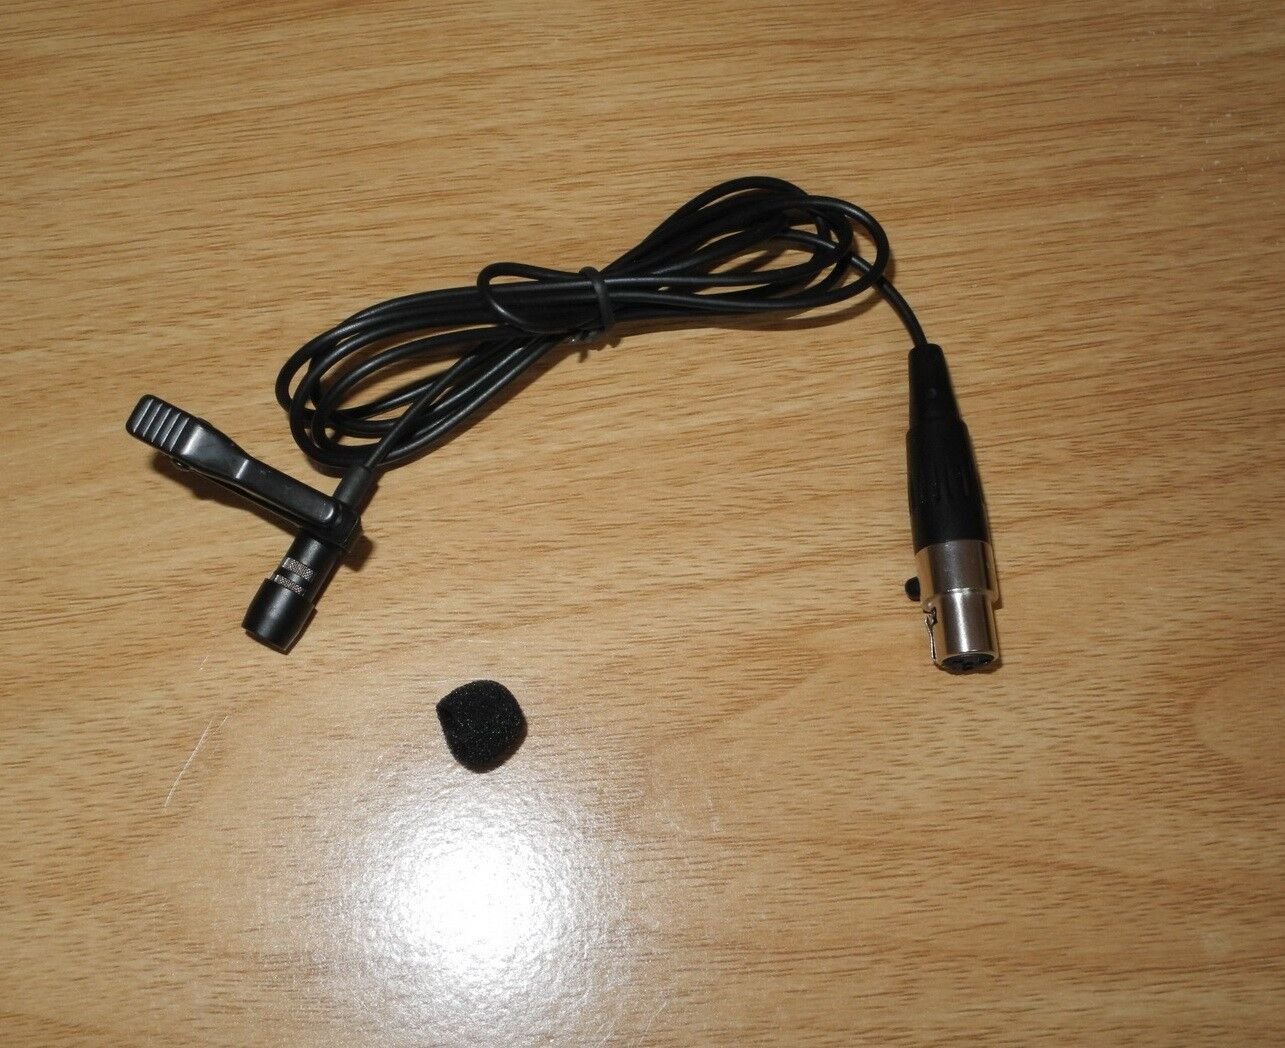 new lavalier tie clip on microphone for shure wireless mic system 4 pin mini xlr 757450802394 ebay. Black Bedroom Furniture Sets. Home Design Ideas